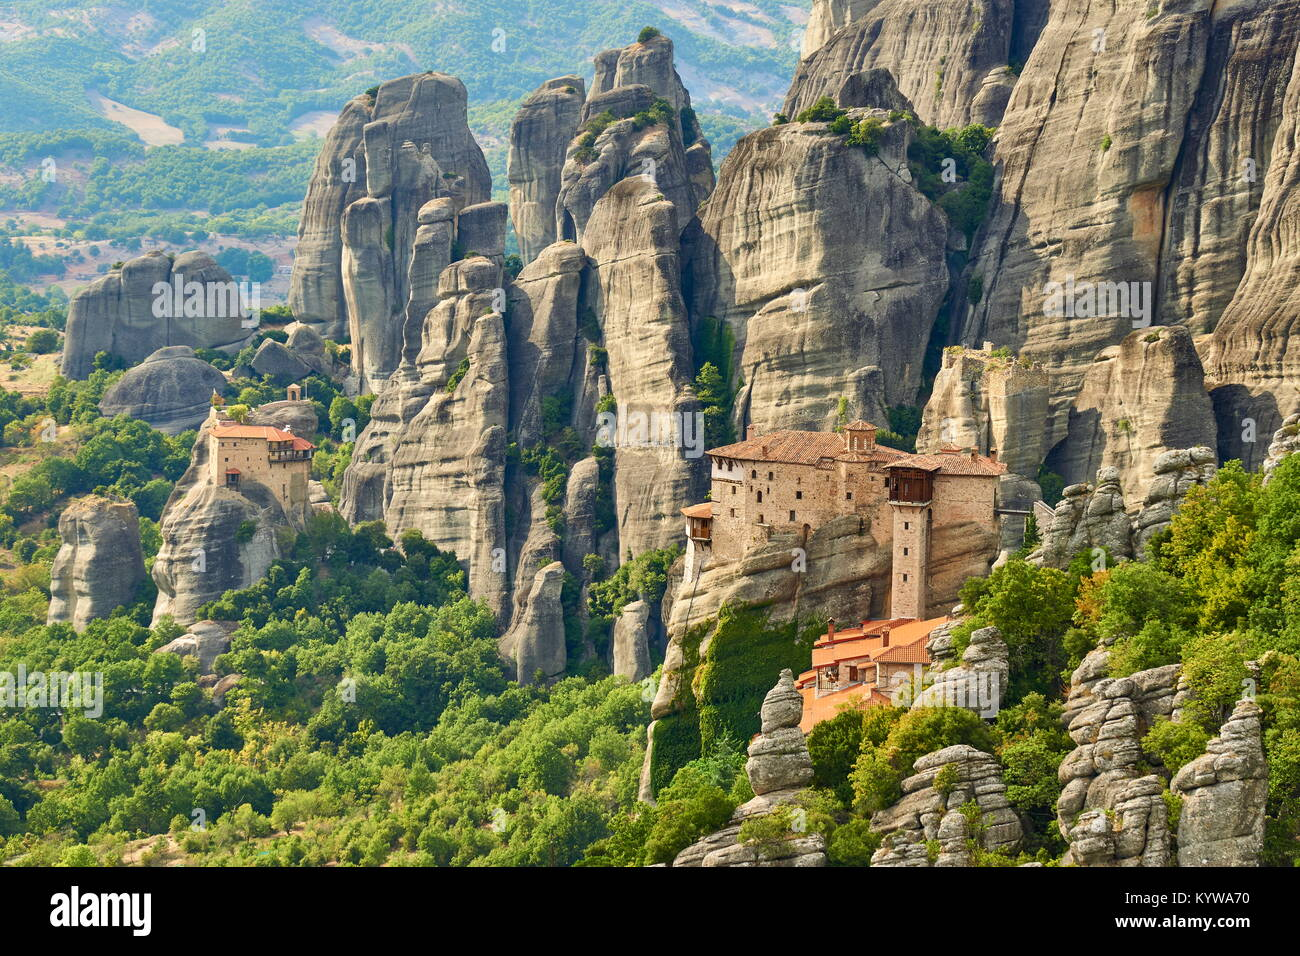 Meteora Monastery, Greece - Stock Image